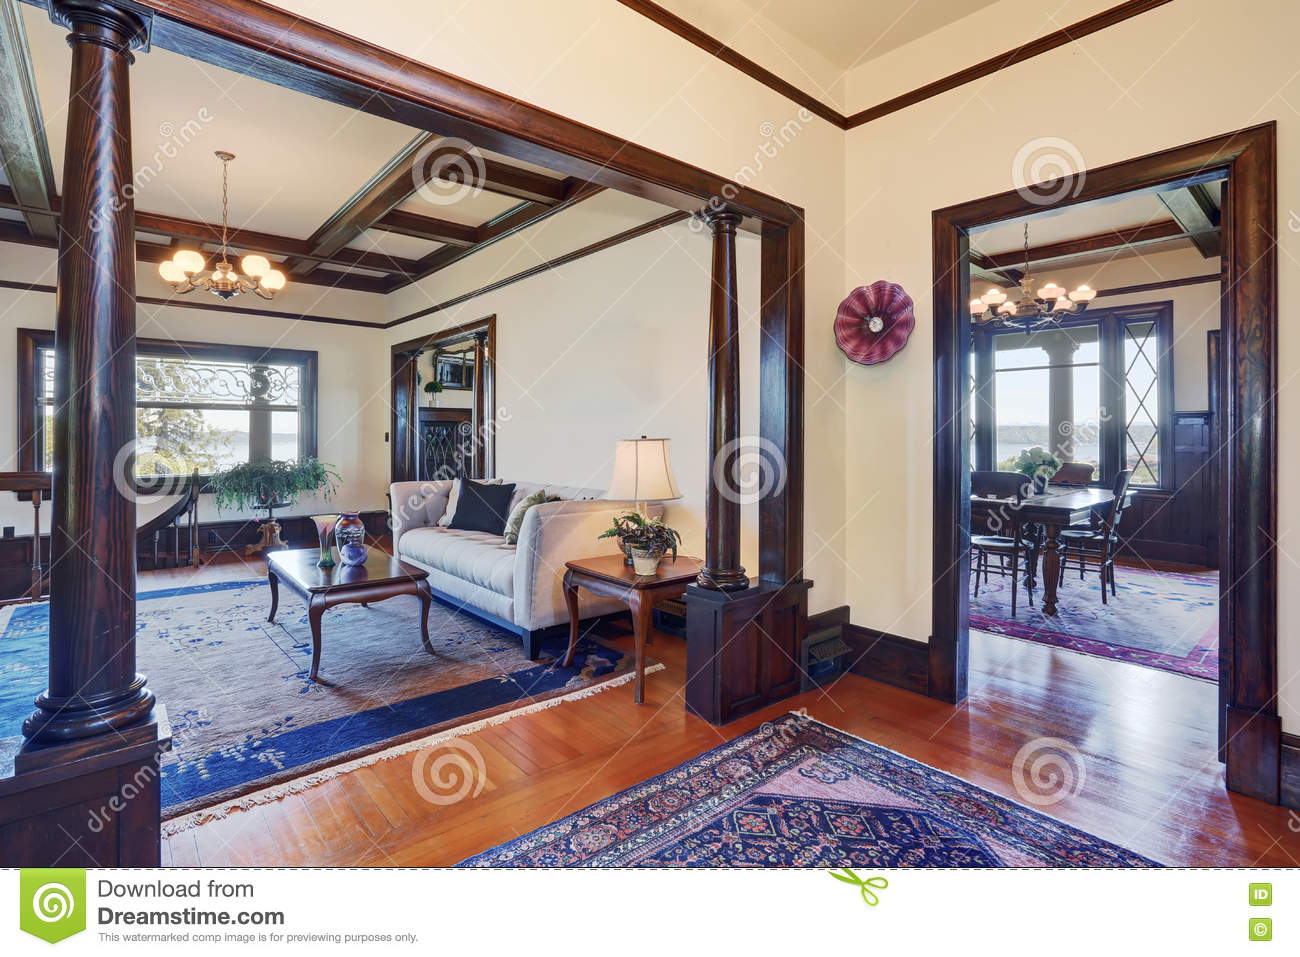 Open Floor Plan Of Living Room And Dining In Old Style House